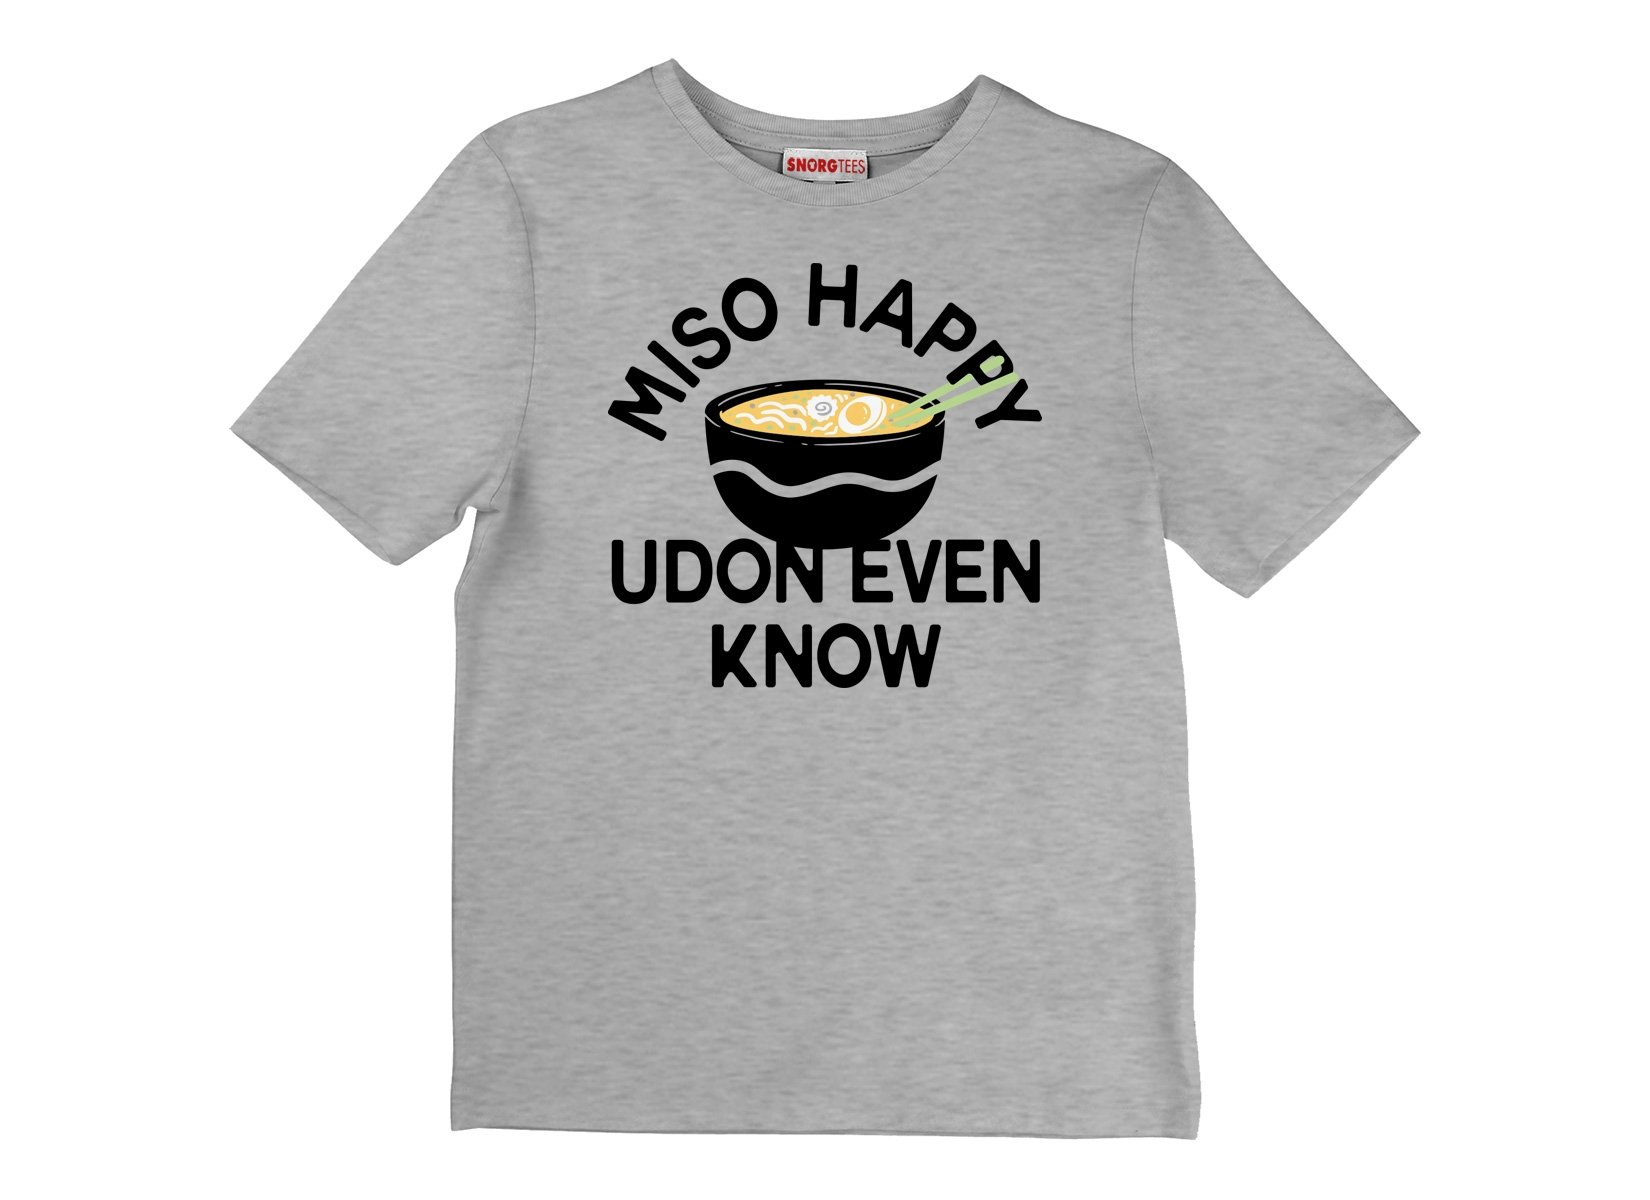 Miso Happy on Kids T-Shirt